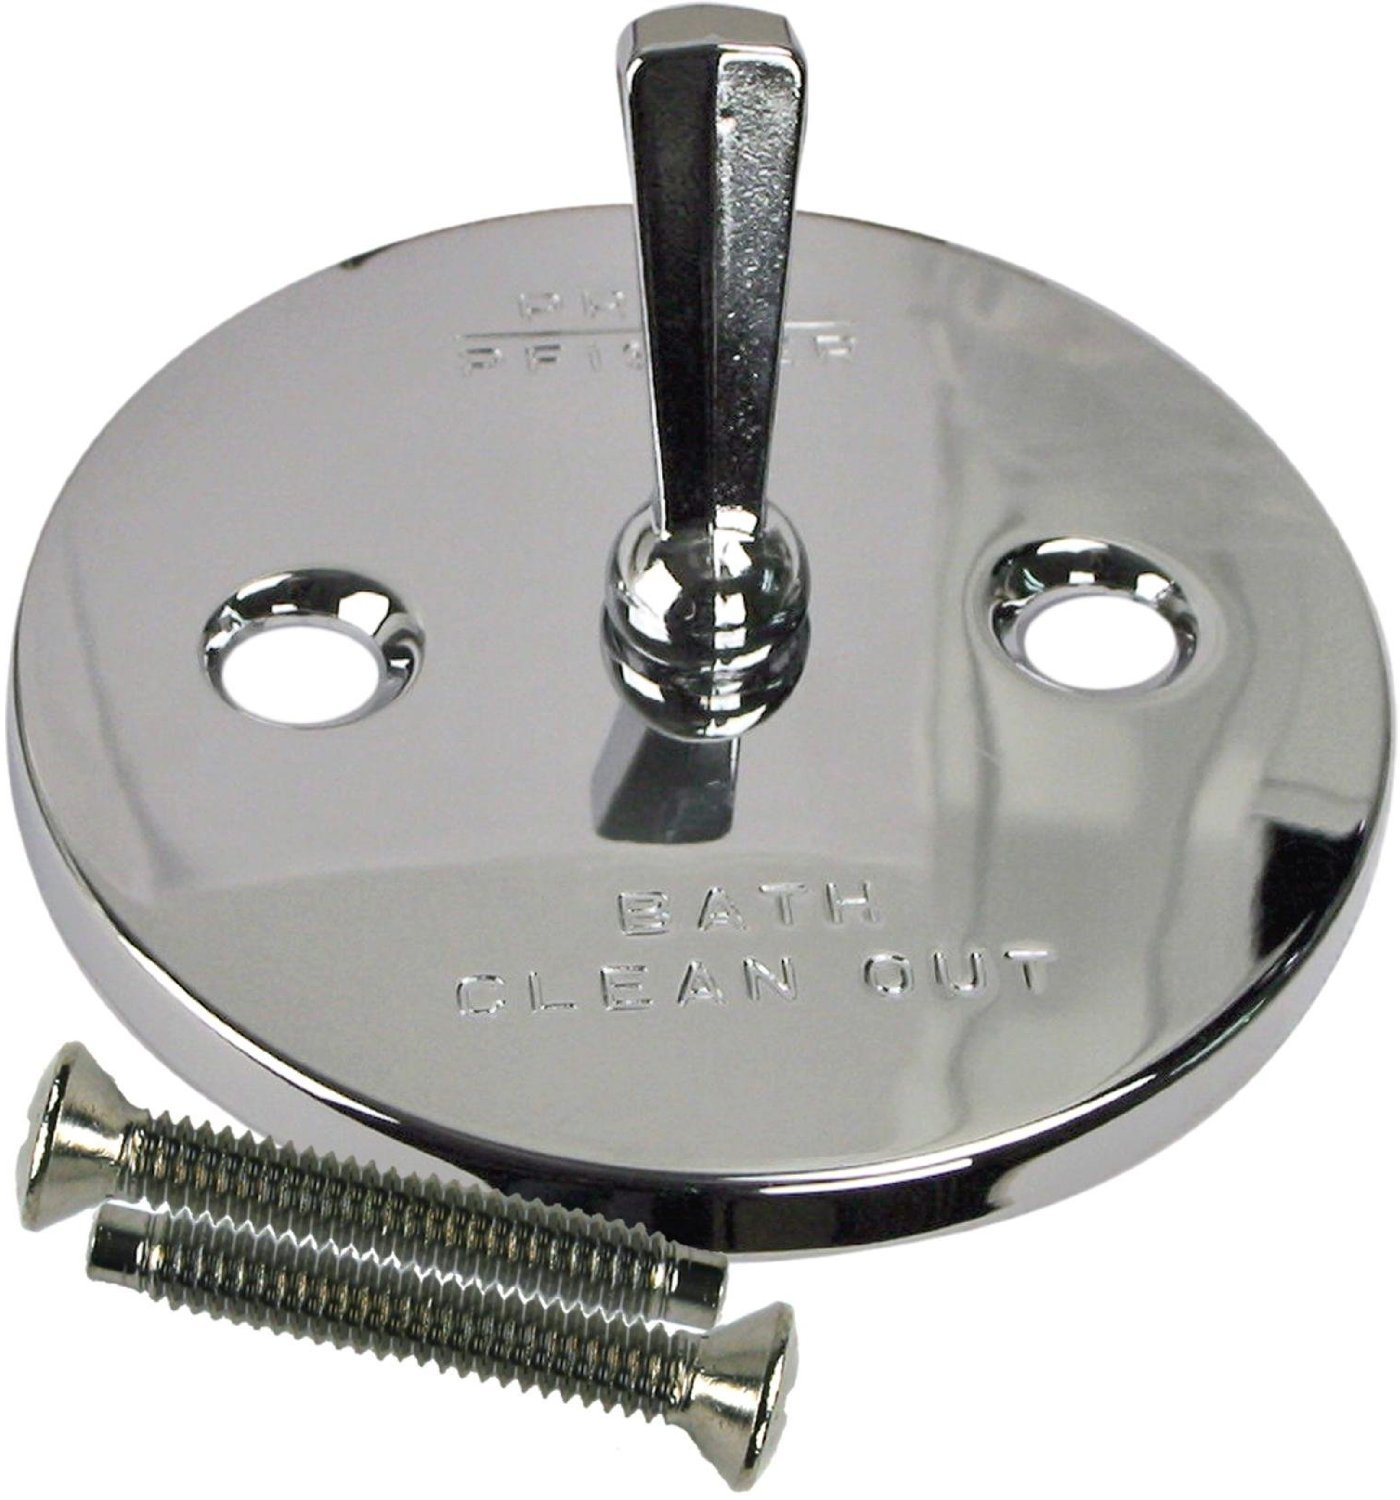 Price Pfister 132107 Tub Plate by Pfister